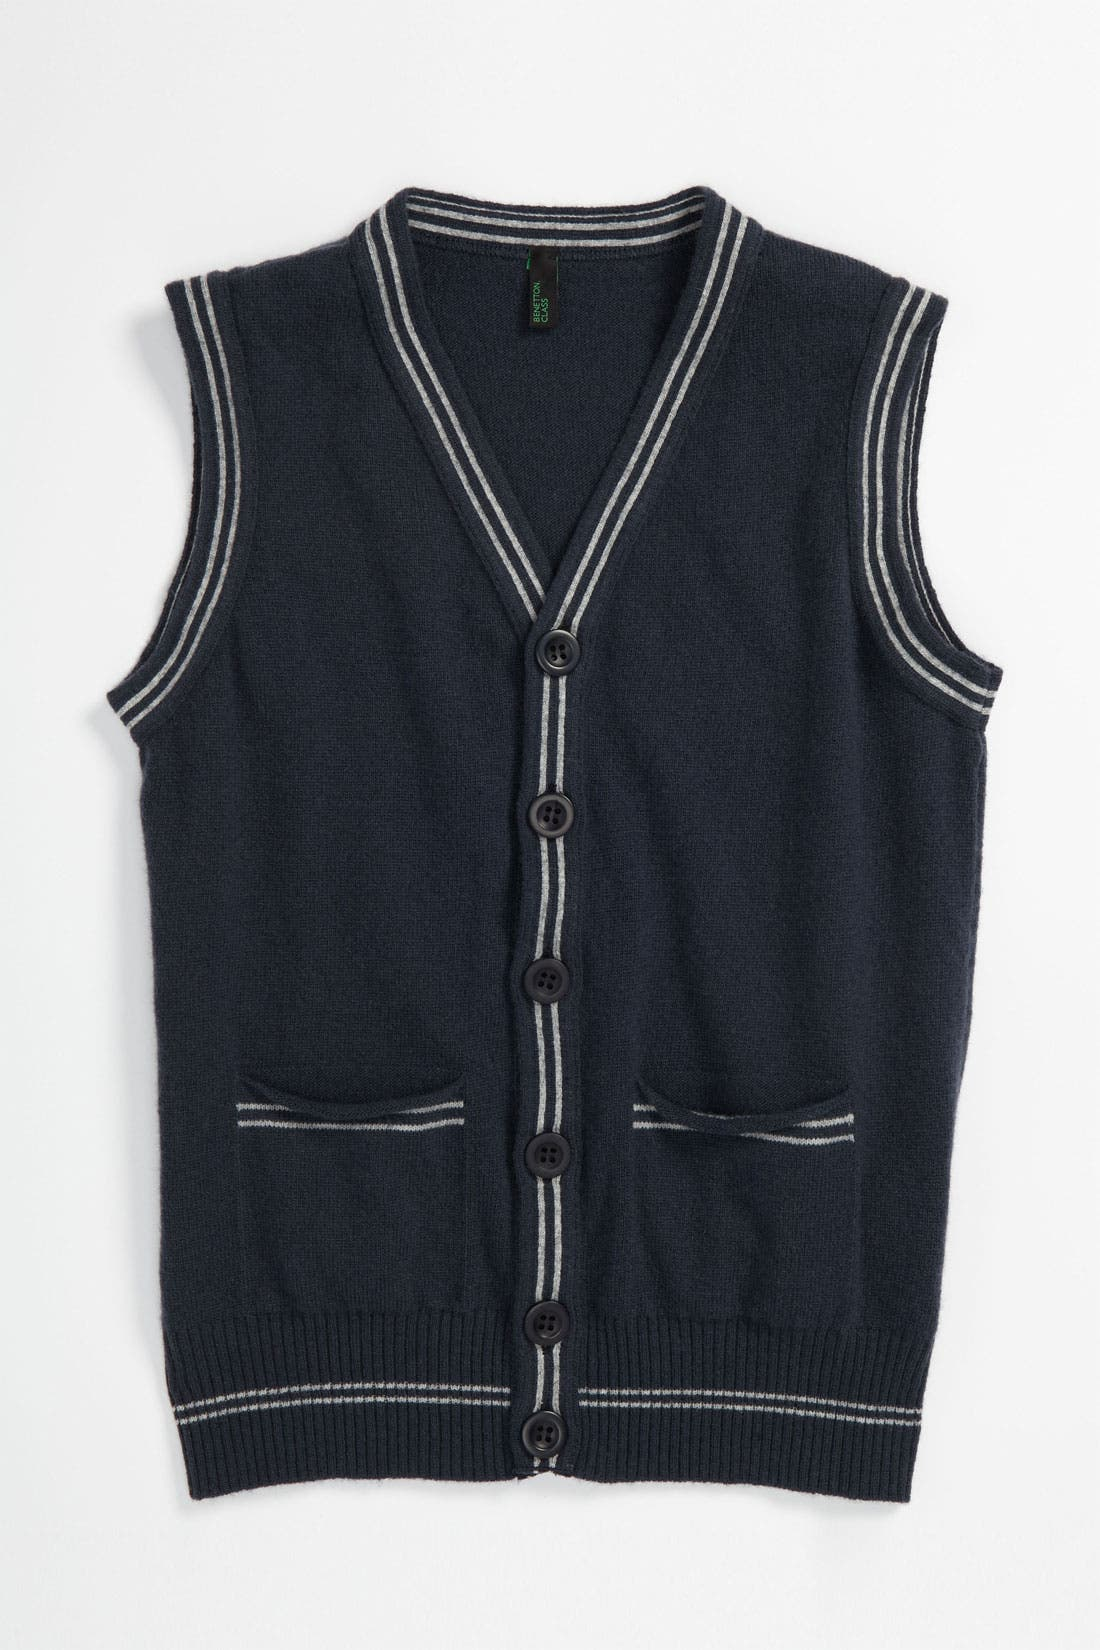 Main Image - United Colors of Benetton Kids Sweater Vest (Little Boys & Big Boys)